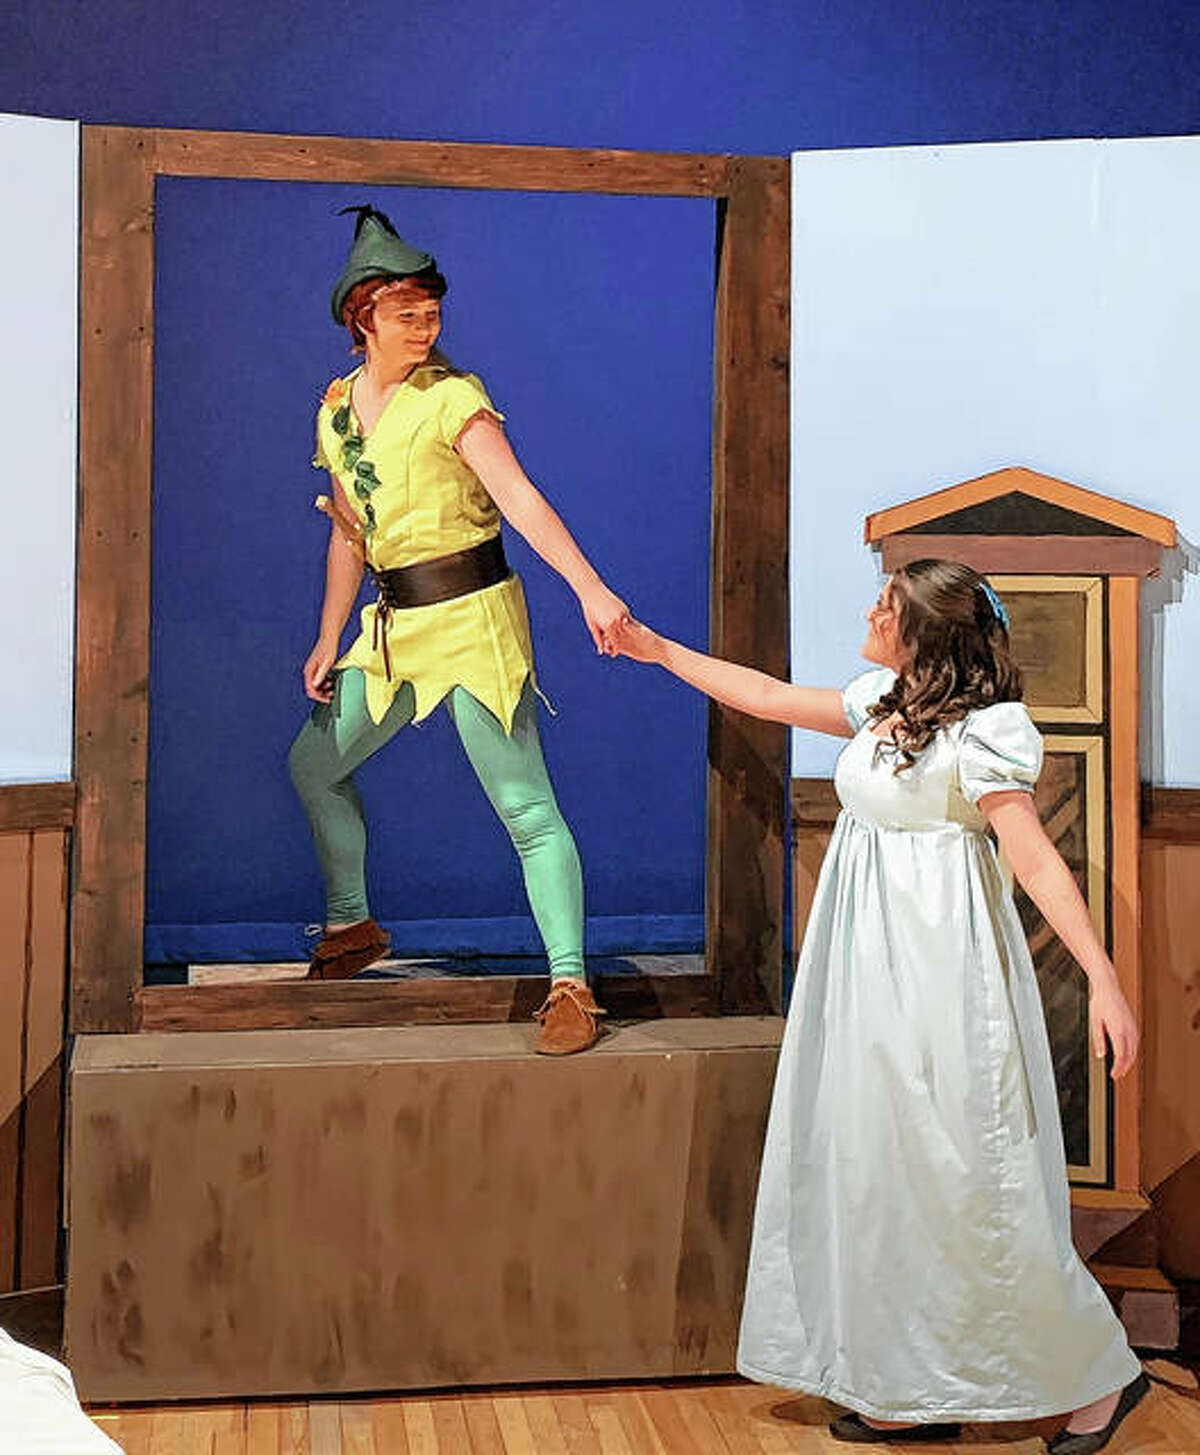 """Kyla Pattie (left) as Peter Pan and Amiah Mather as Wendy Darling rehearse a scene from the Jacksonville High School theater department's production of """"Peter Pan"""". The play will be presented at 7:30 p.m. Friday, Saturday and Sunday in the JHS auditorium. Tickets are $5 at the door."""